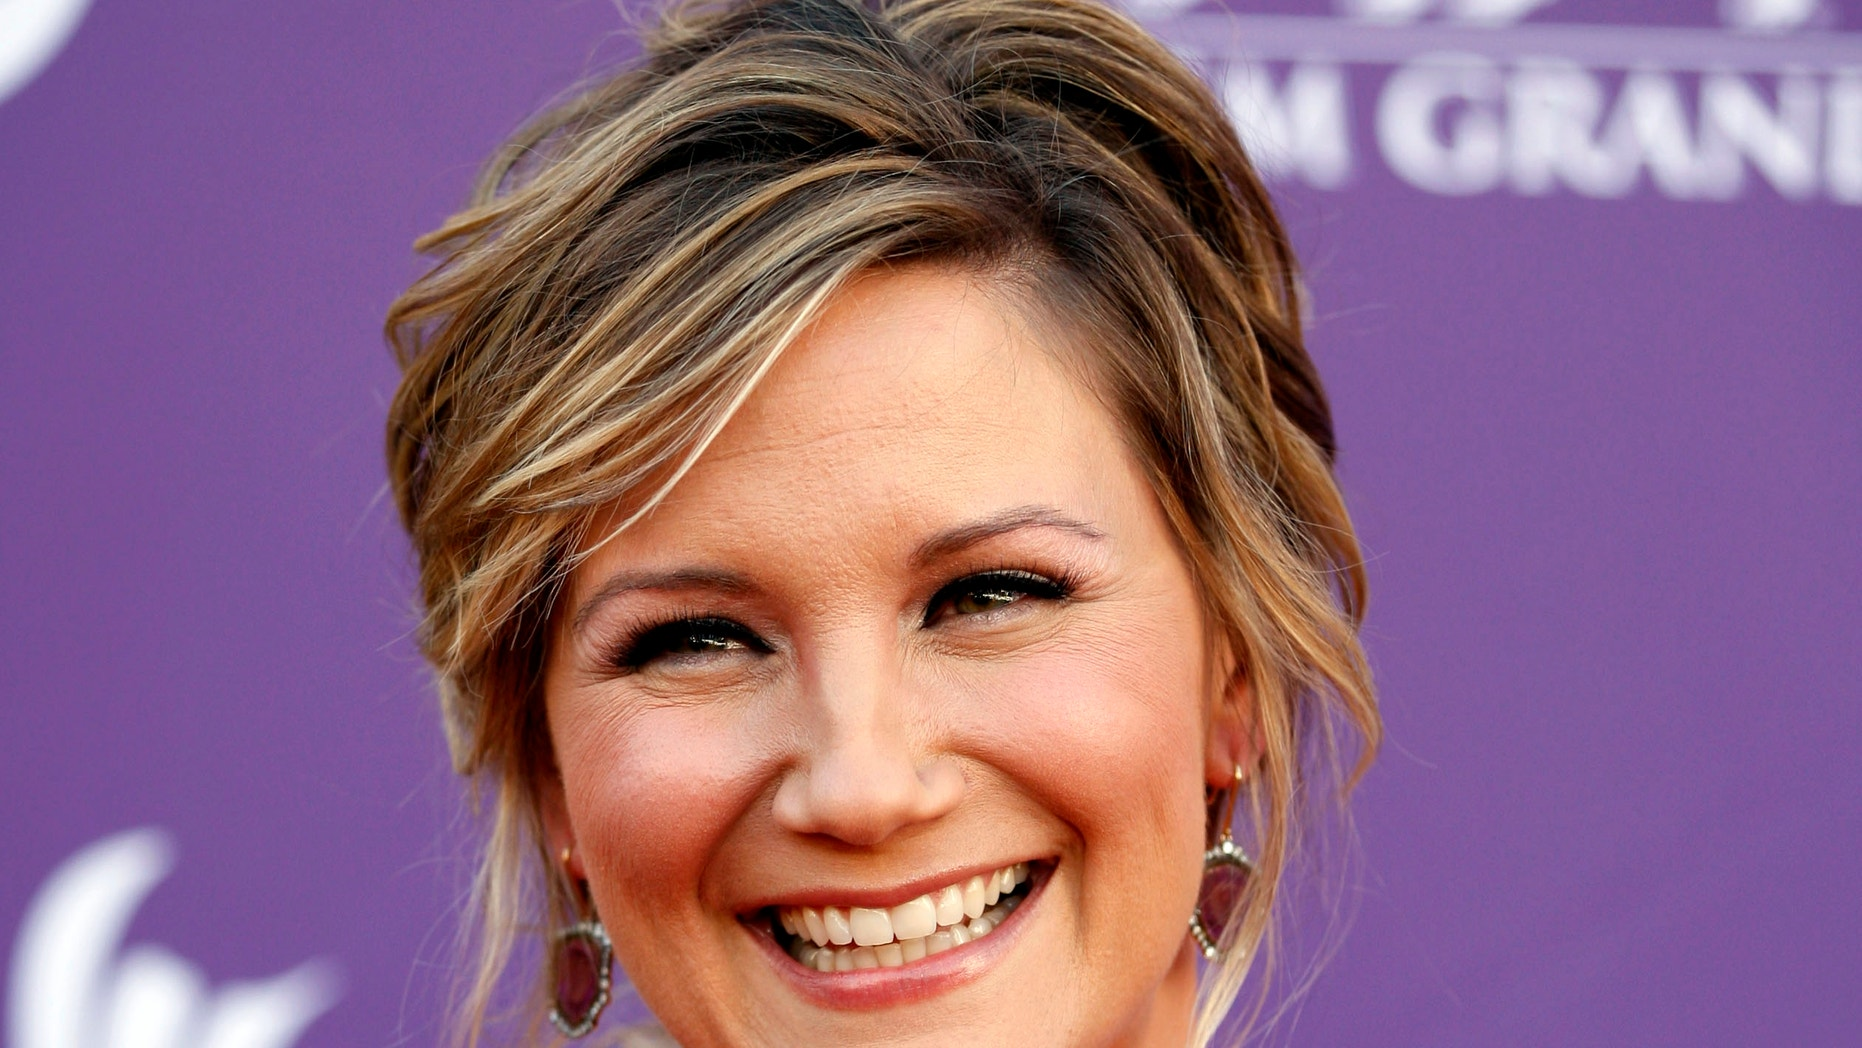 Country singer Jennifer Nettles, of musical group Sugarland, arrives at the 47th Annual Academy of Country Music Awards on April 1, 2012.